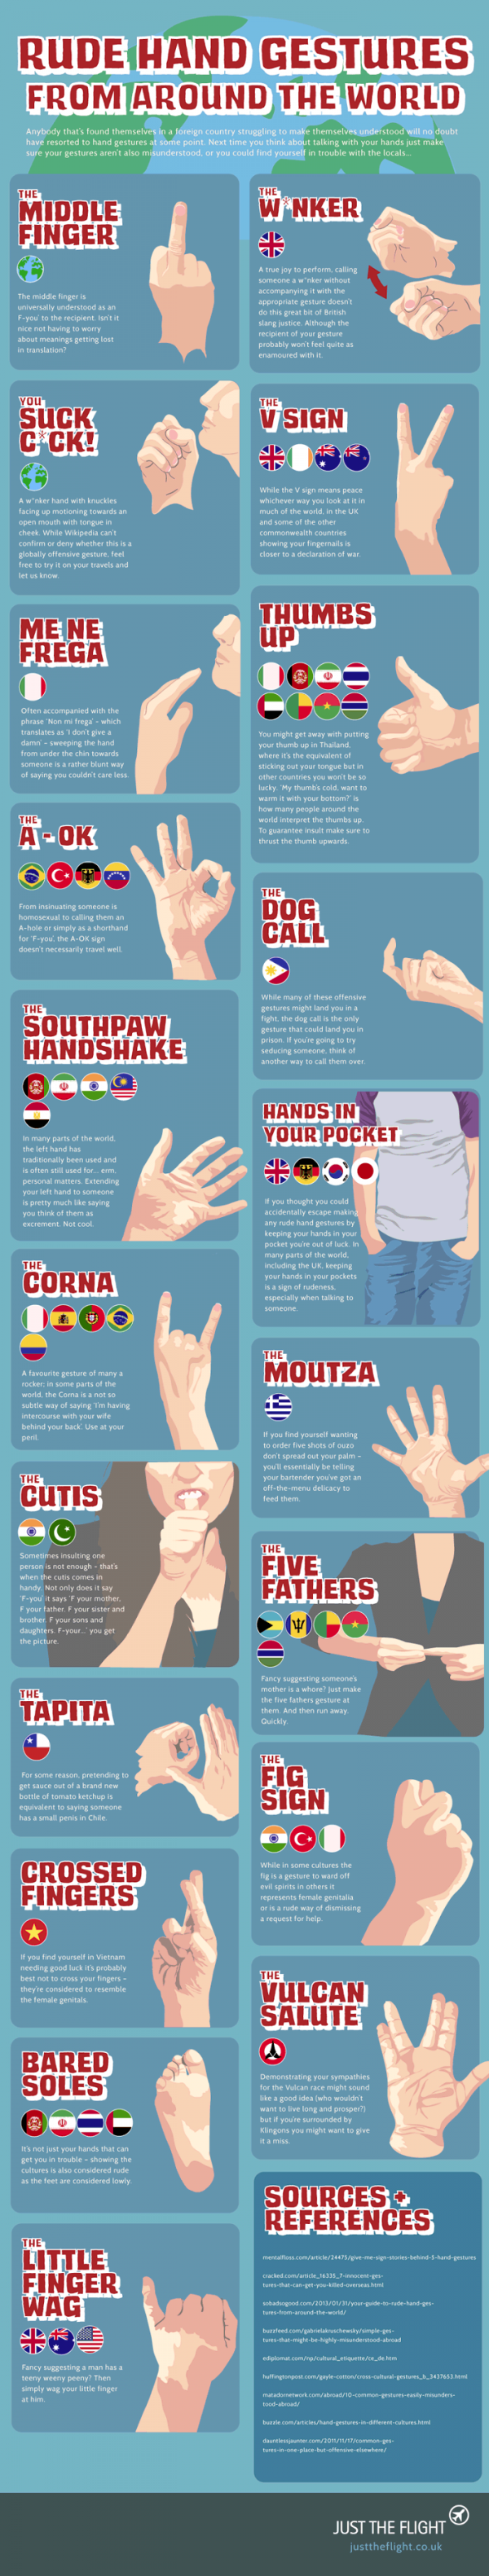 Don't embarrass yourself: This infographic breaks down obscene ...